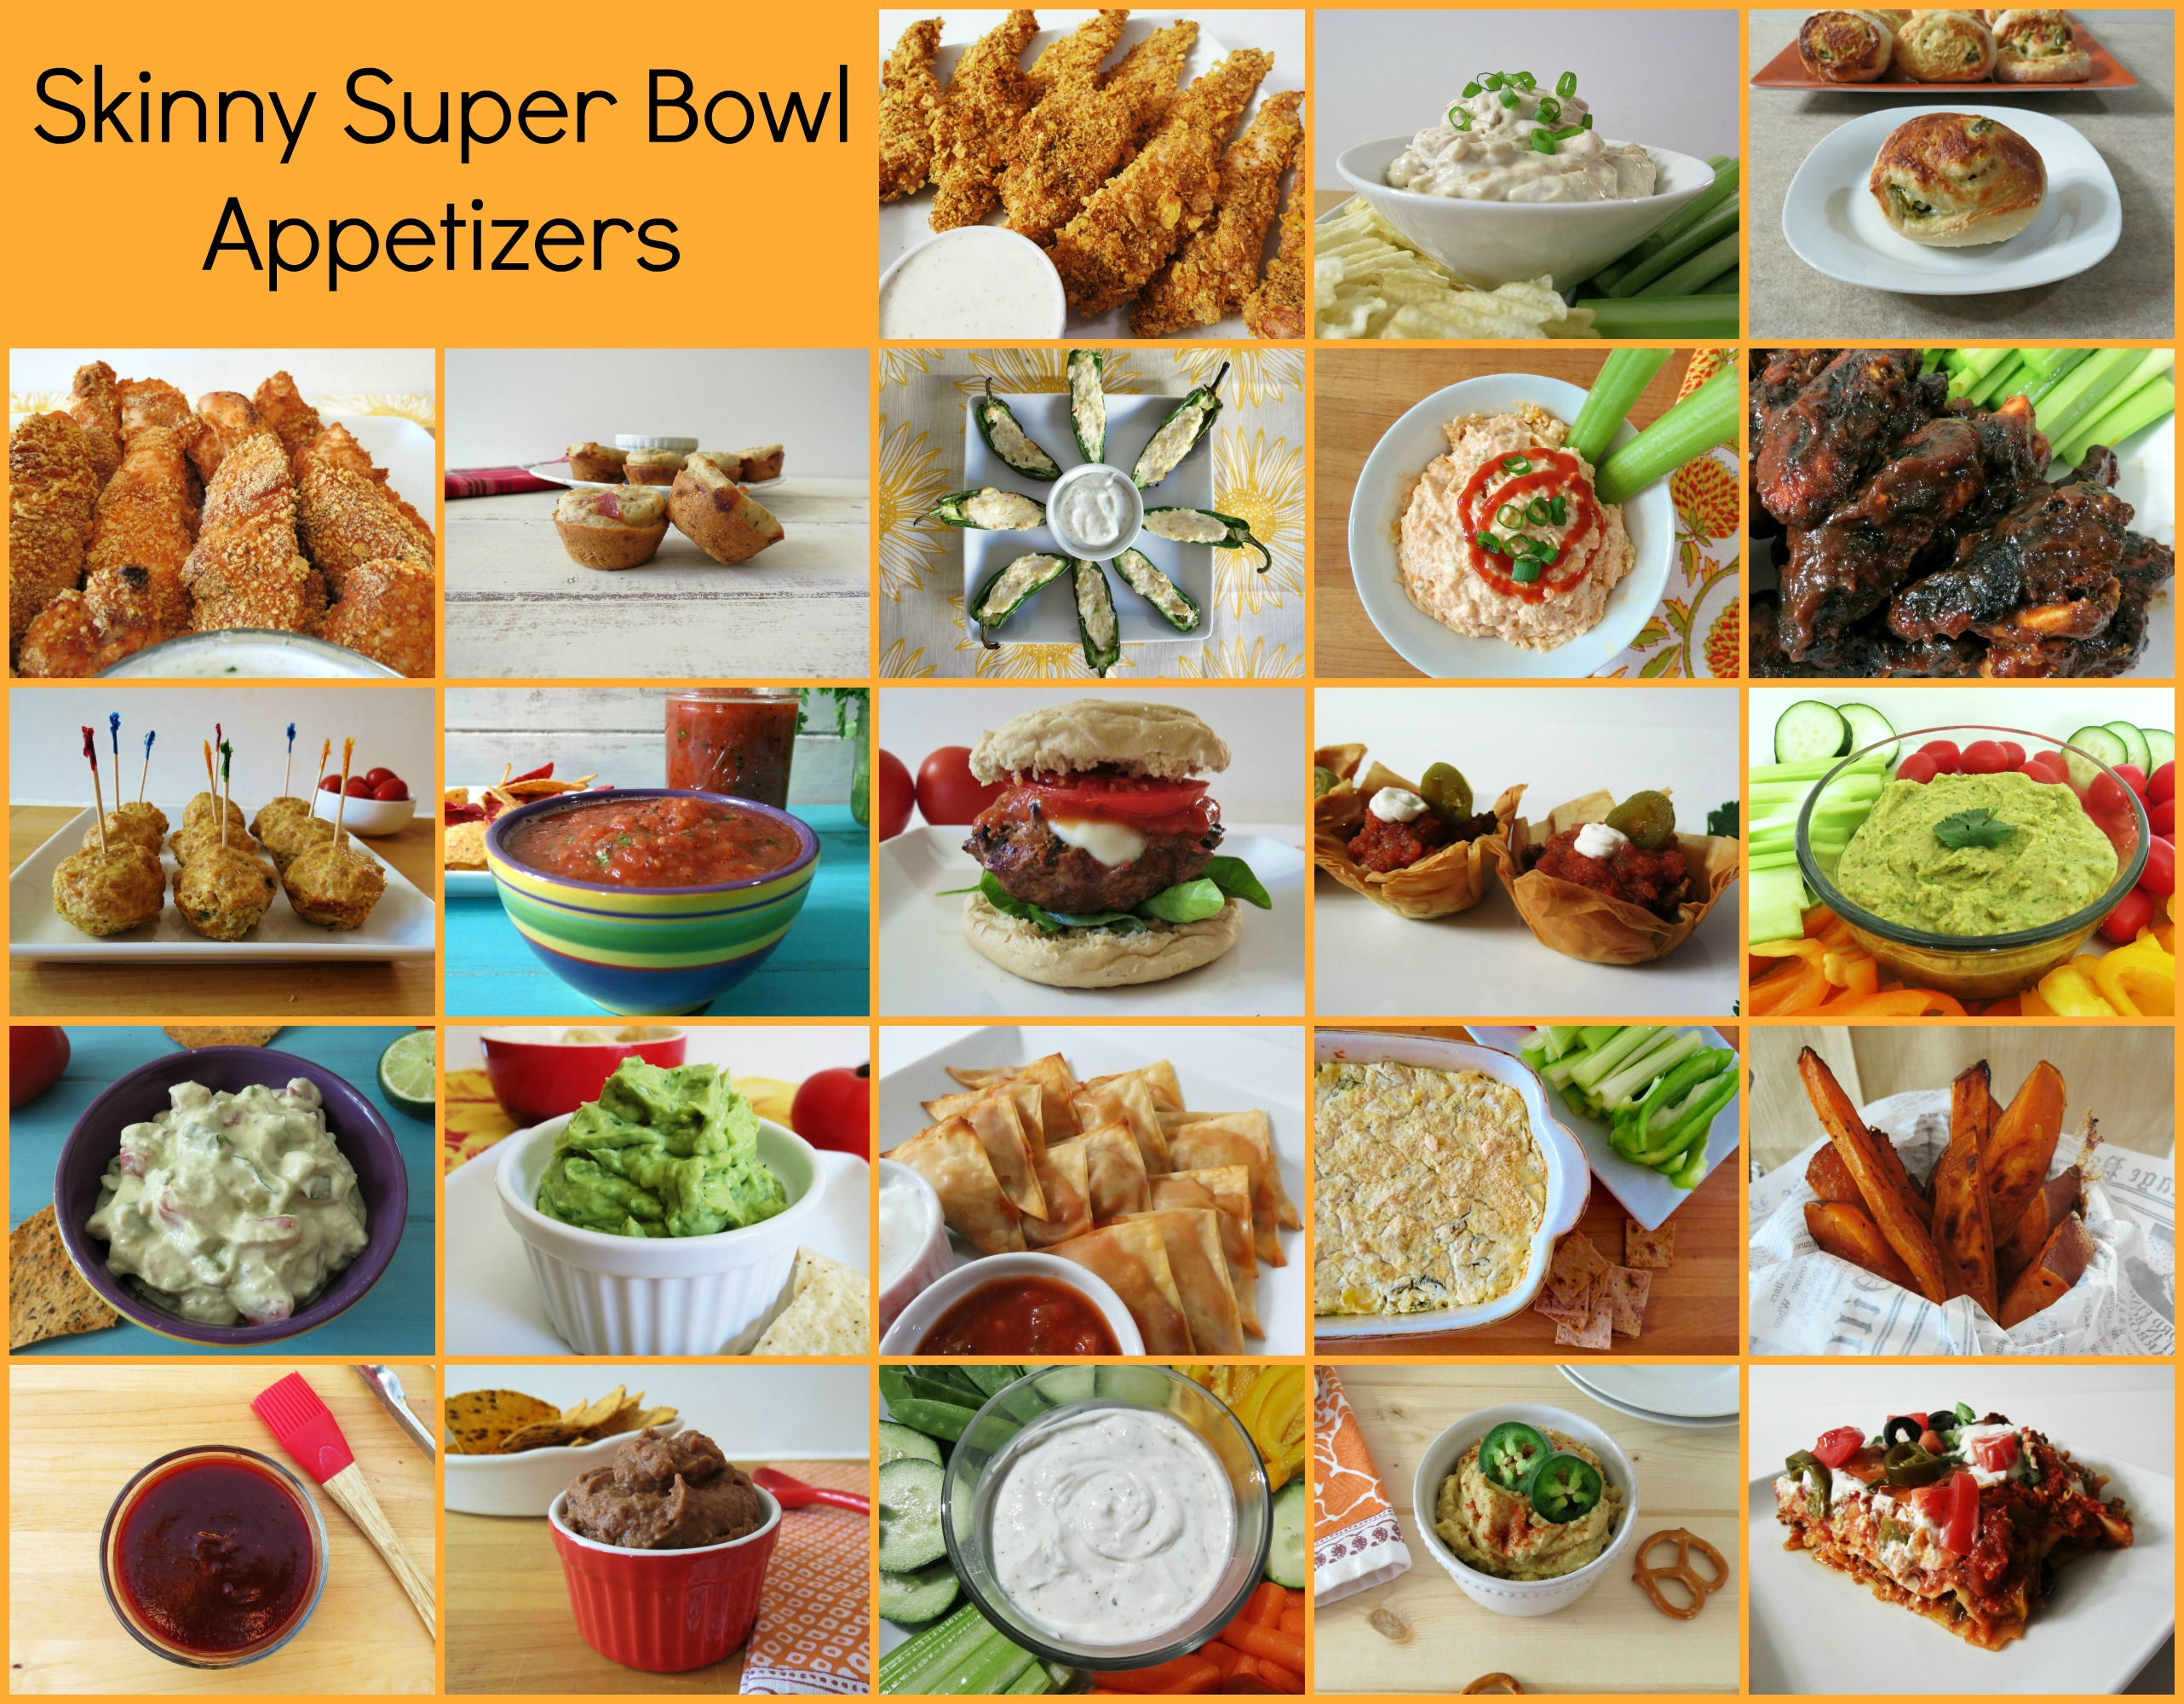 Skinny Super Bowl Appetizers 2013 Season #HolidayDetox